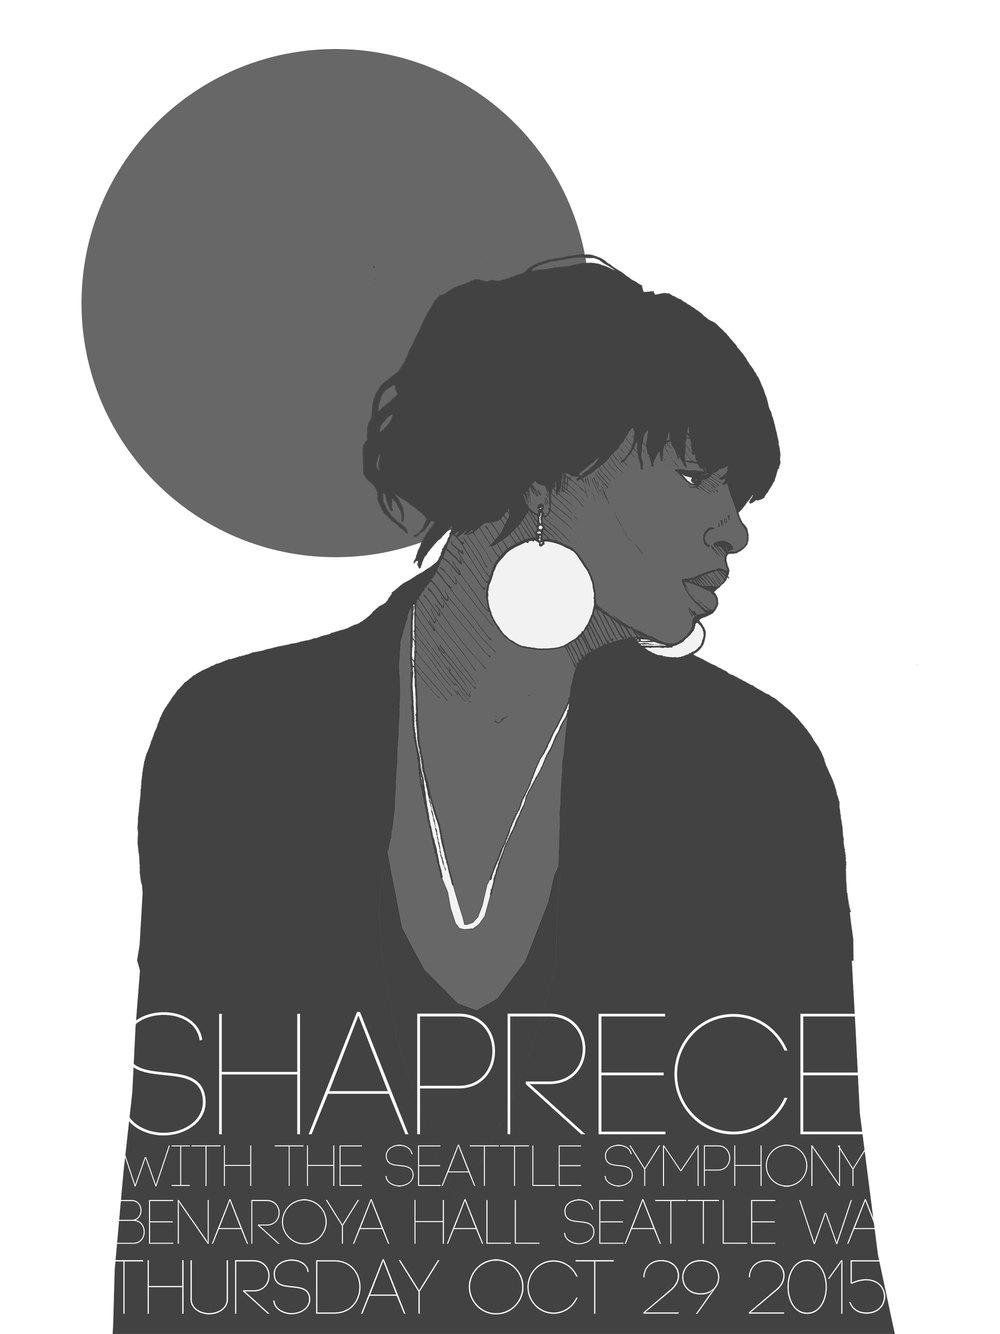 Shaprece-Poster-2.2-WEB.jpg